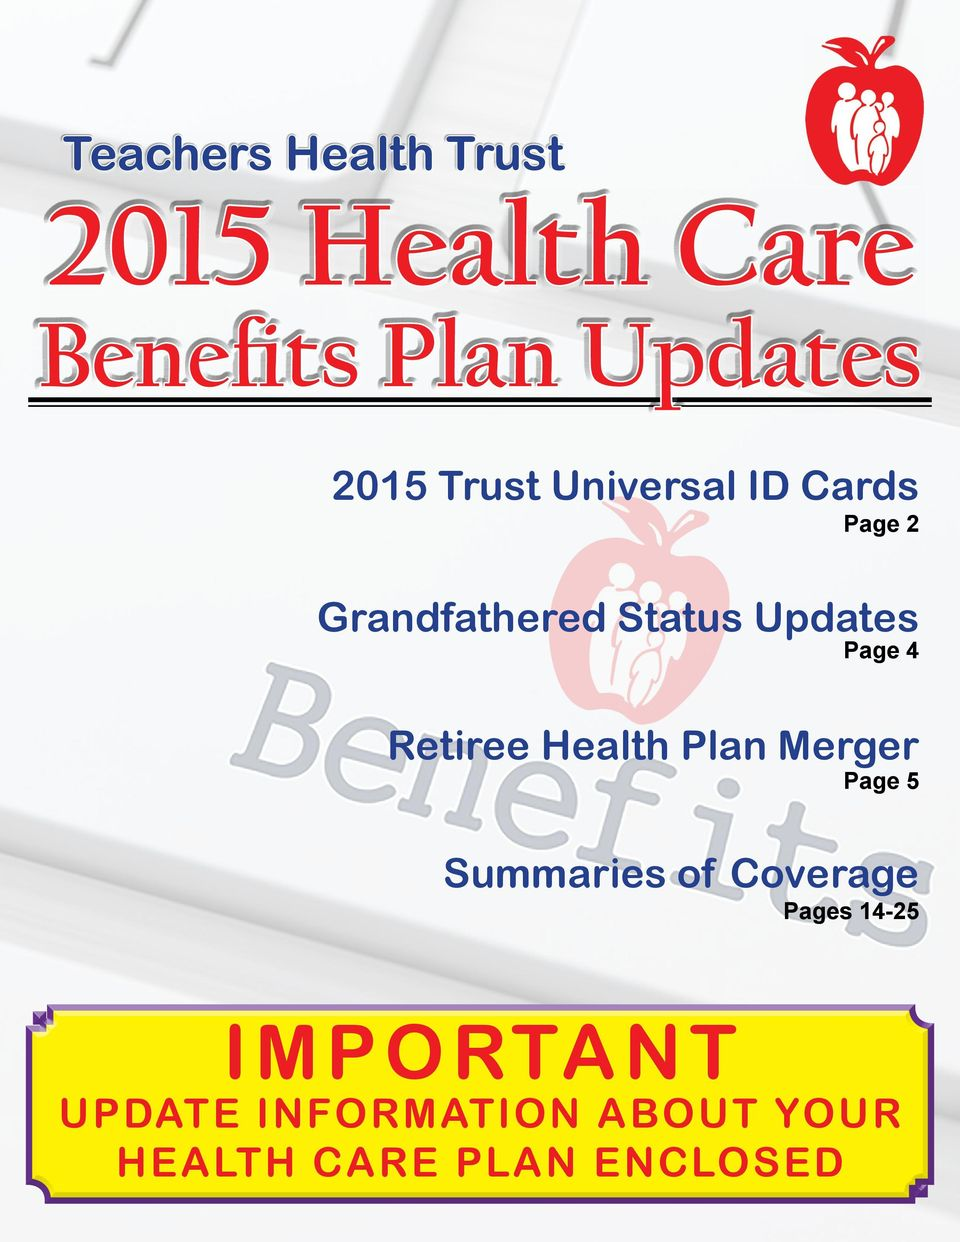 4 Retiree Health Plan Merger Page 5 Summaries of Coverage Pages